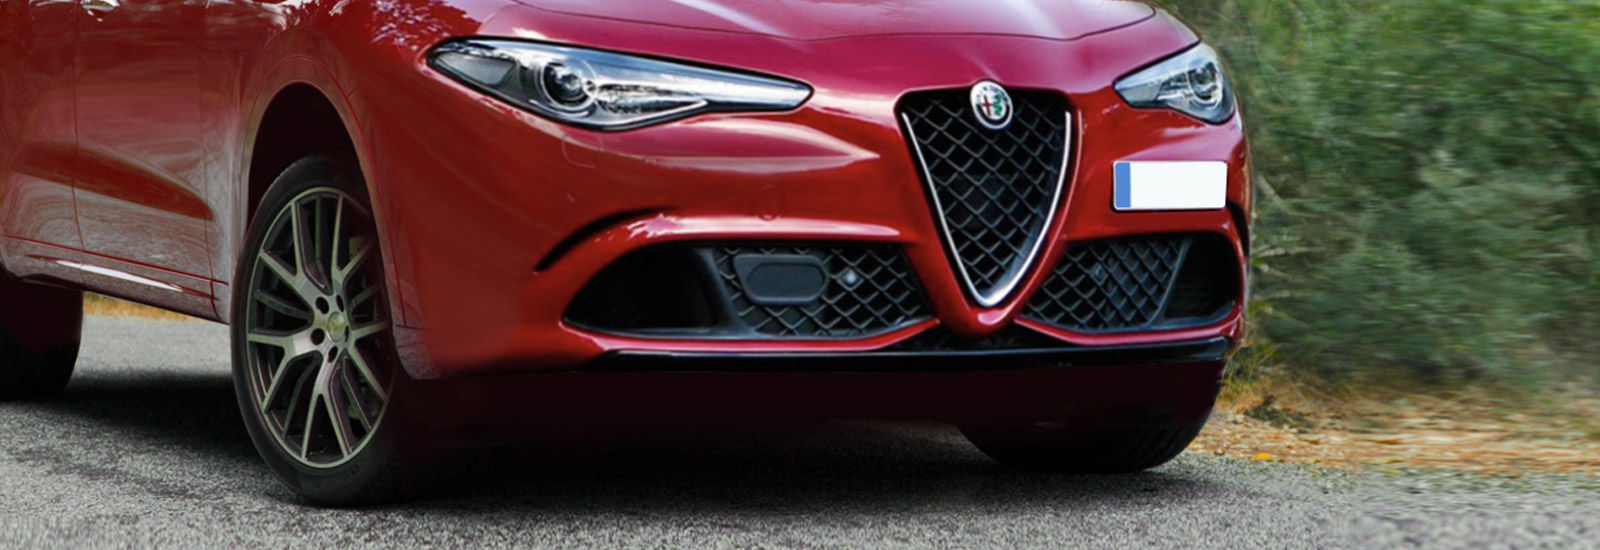 alfa romeo stelvio specs with Alfa Romeo Suv Price Specs Release Date 2751 on New Images 2017 Ducati 1299 Panigale S Hd Photos furthermore 2019 Jaguar F Pace Specs And News Update as well 2017 Porsche Cayenne Coupe furthermore 2018 Alfa Romeo Giulia Green Options Grand Tour further Jaguar Xjr I Jaguar Xjr 1998 Exhaust.